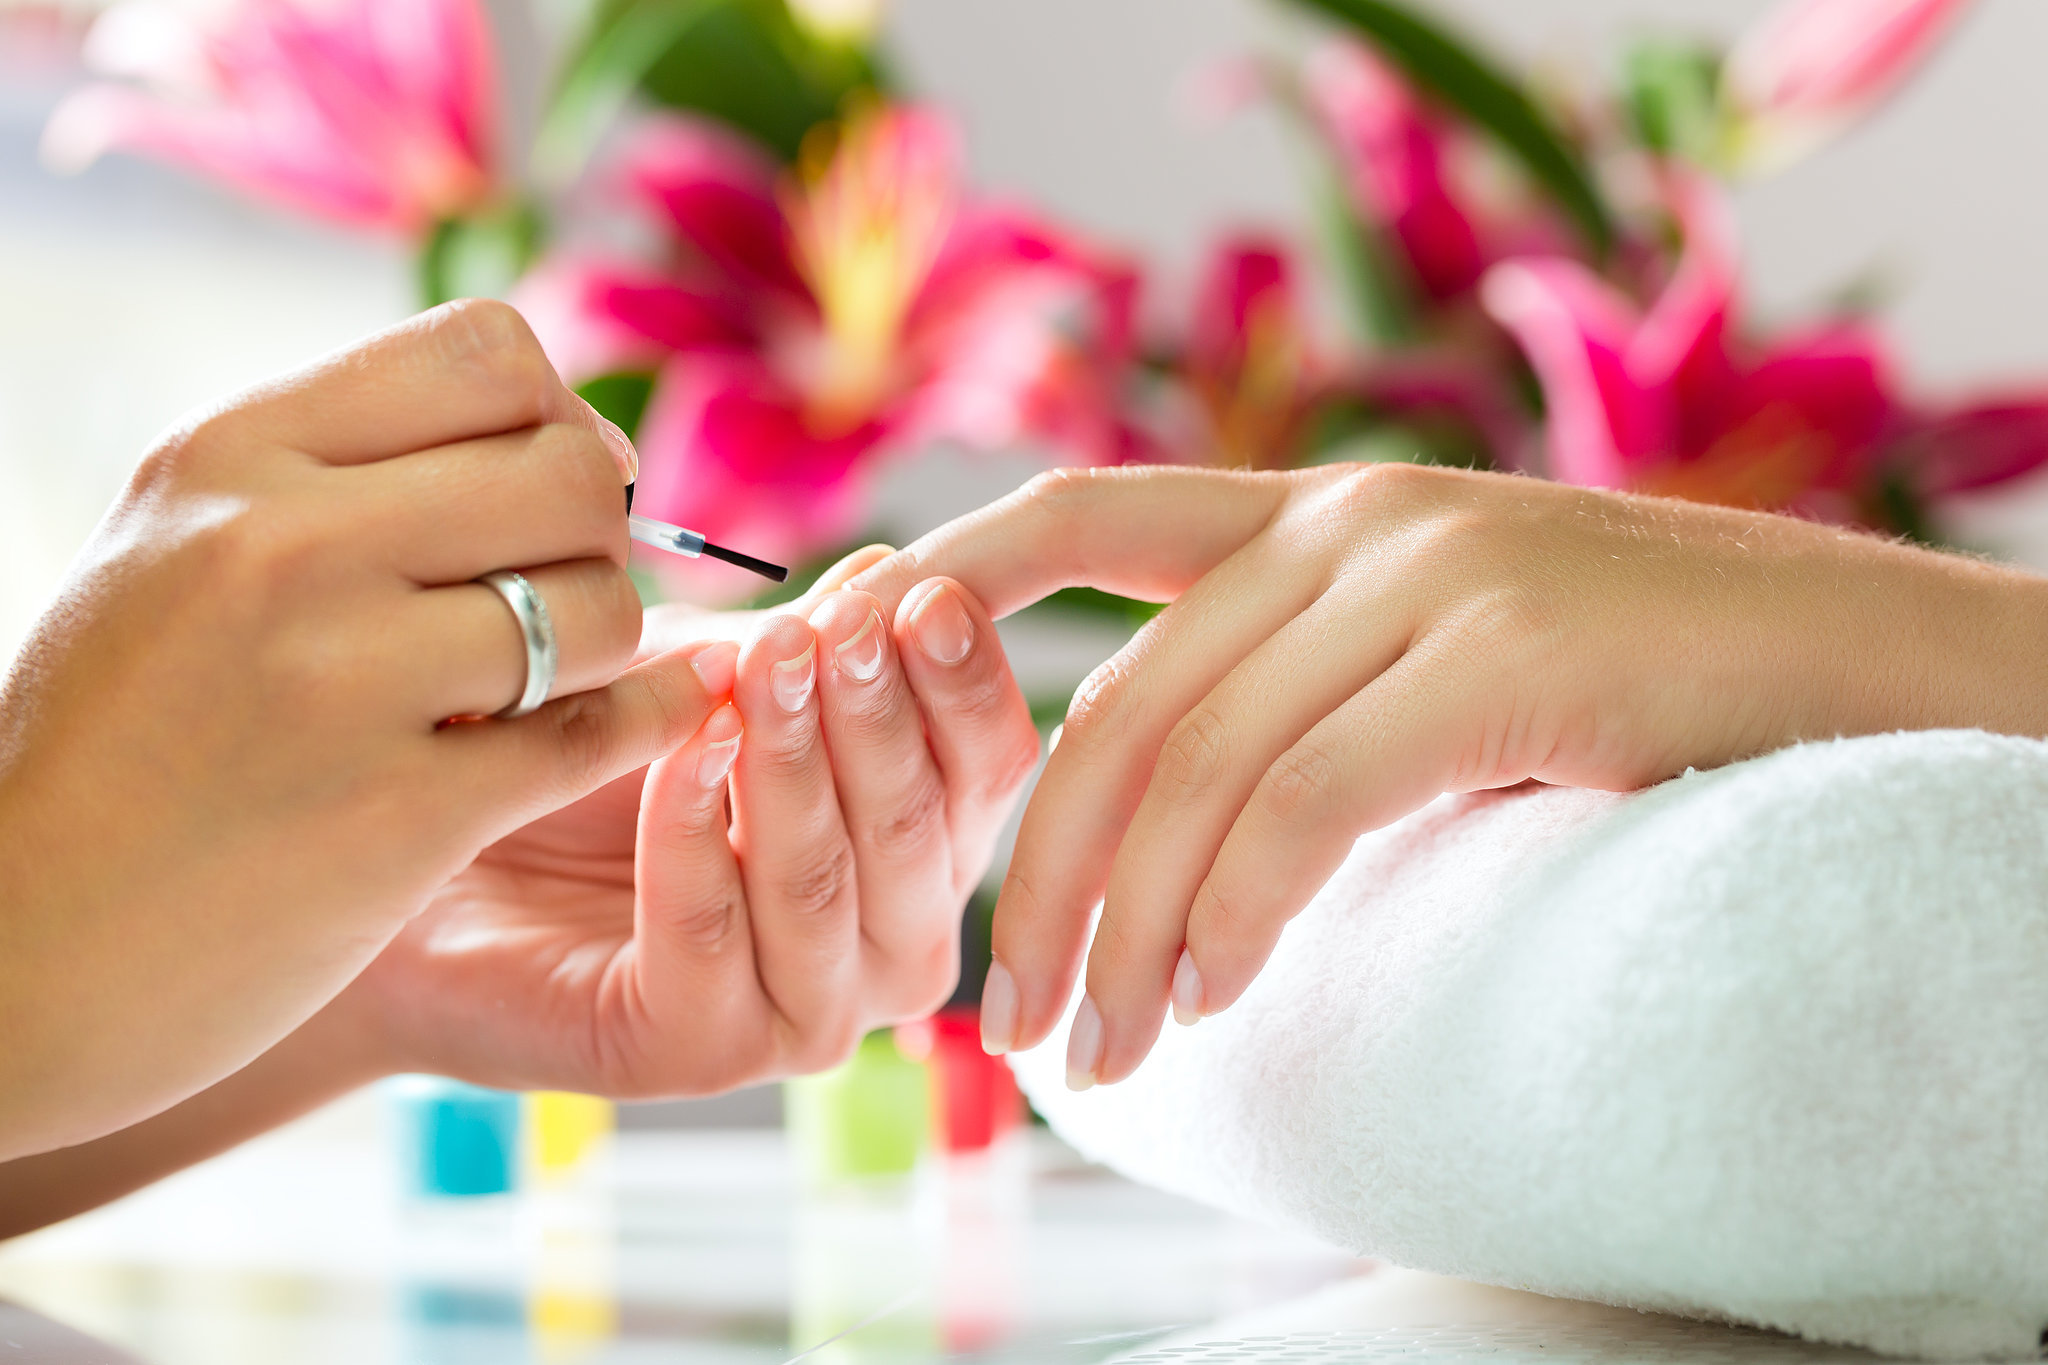 manicures are a healthy service to give to yourself